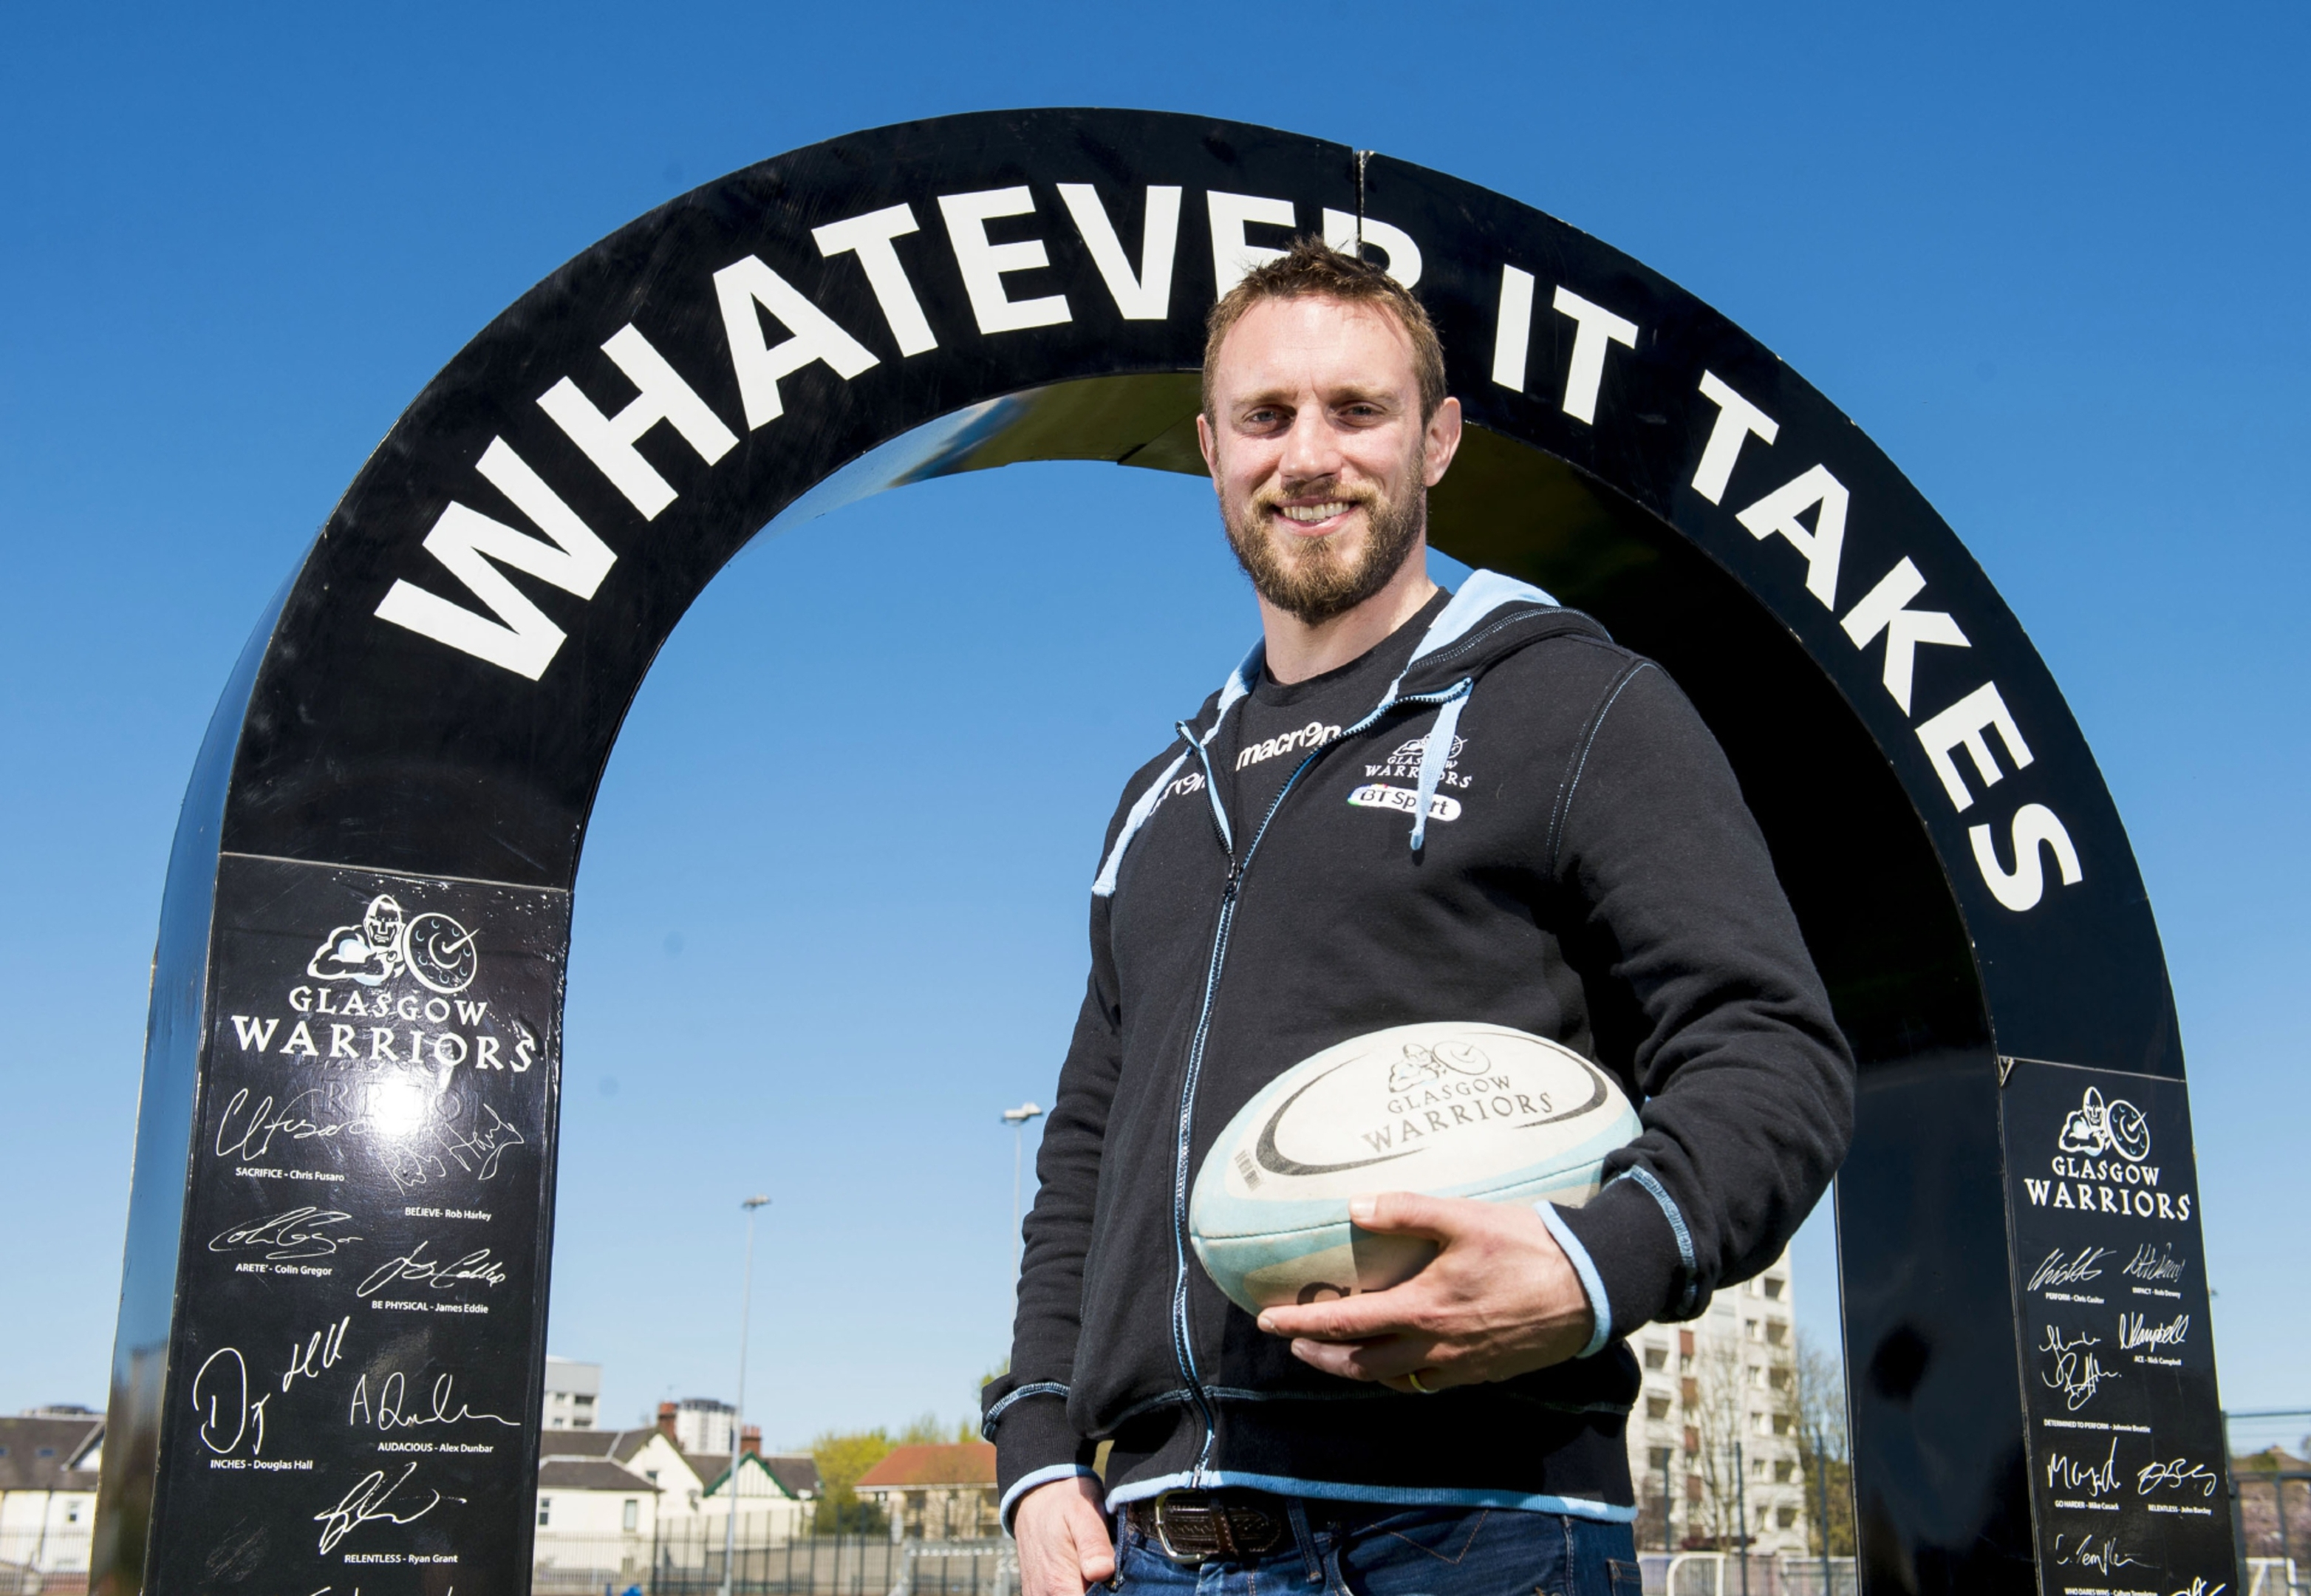 Mike Blair will join the Glasgow Warriors coaching staff after his retirement from playing.